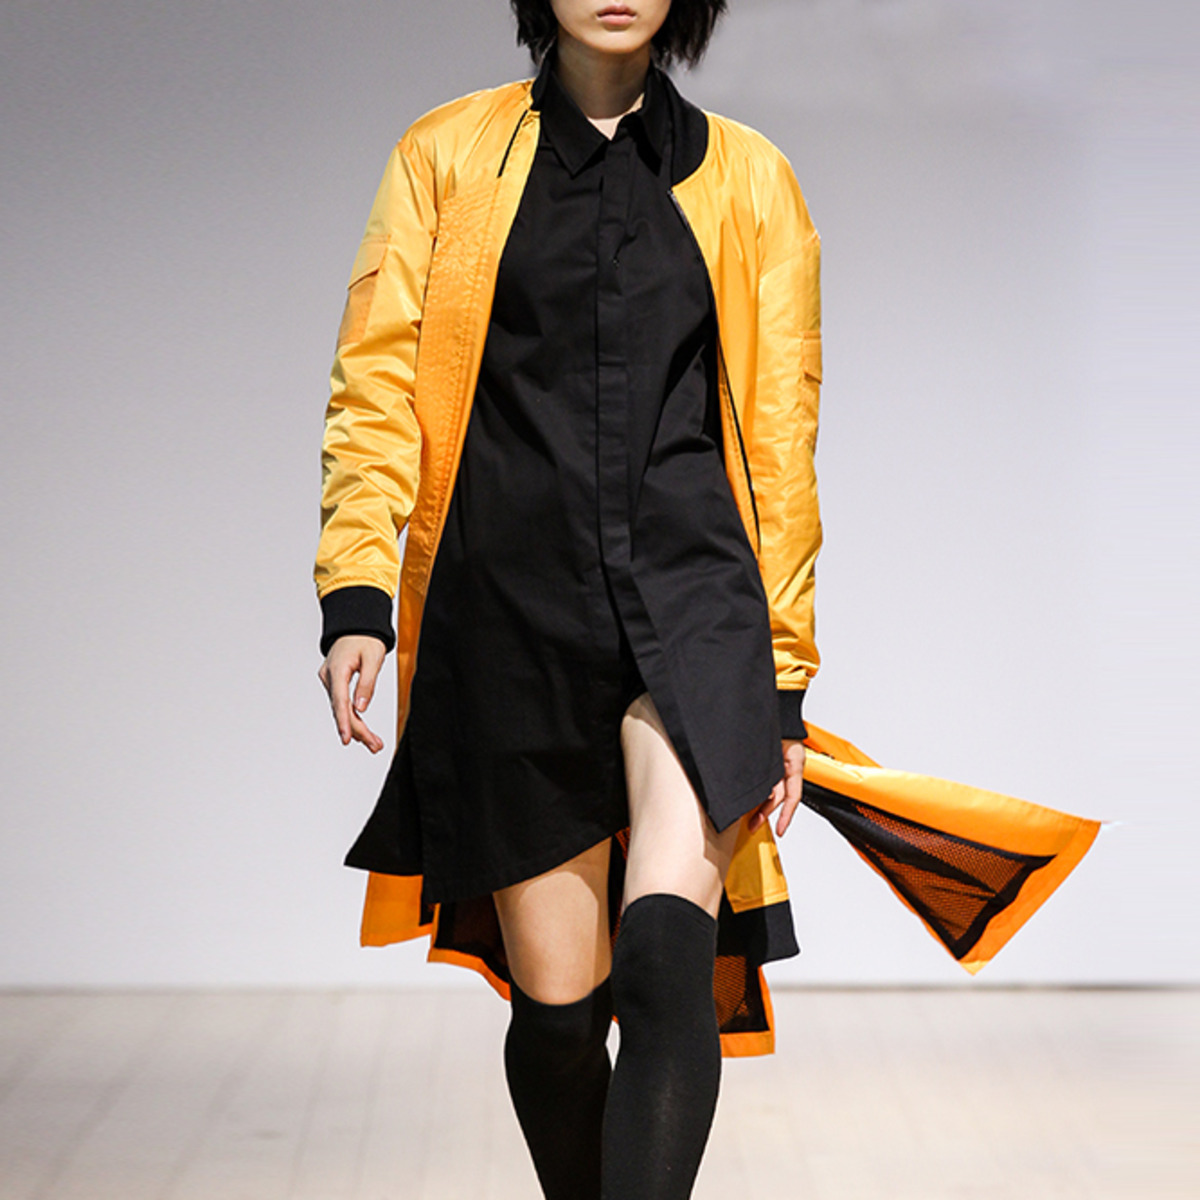 YELLOW MA-1 COAT